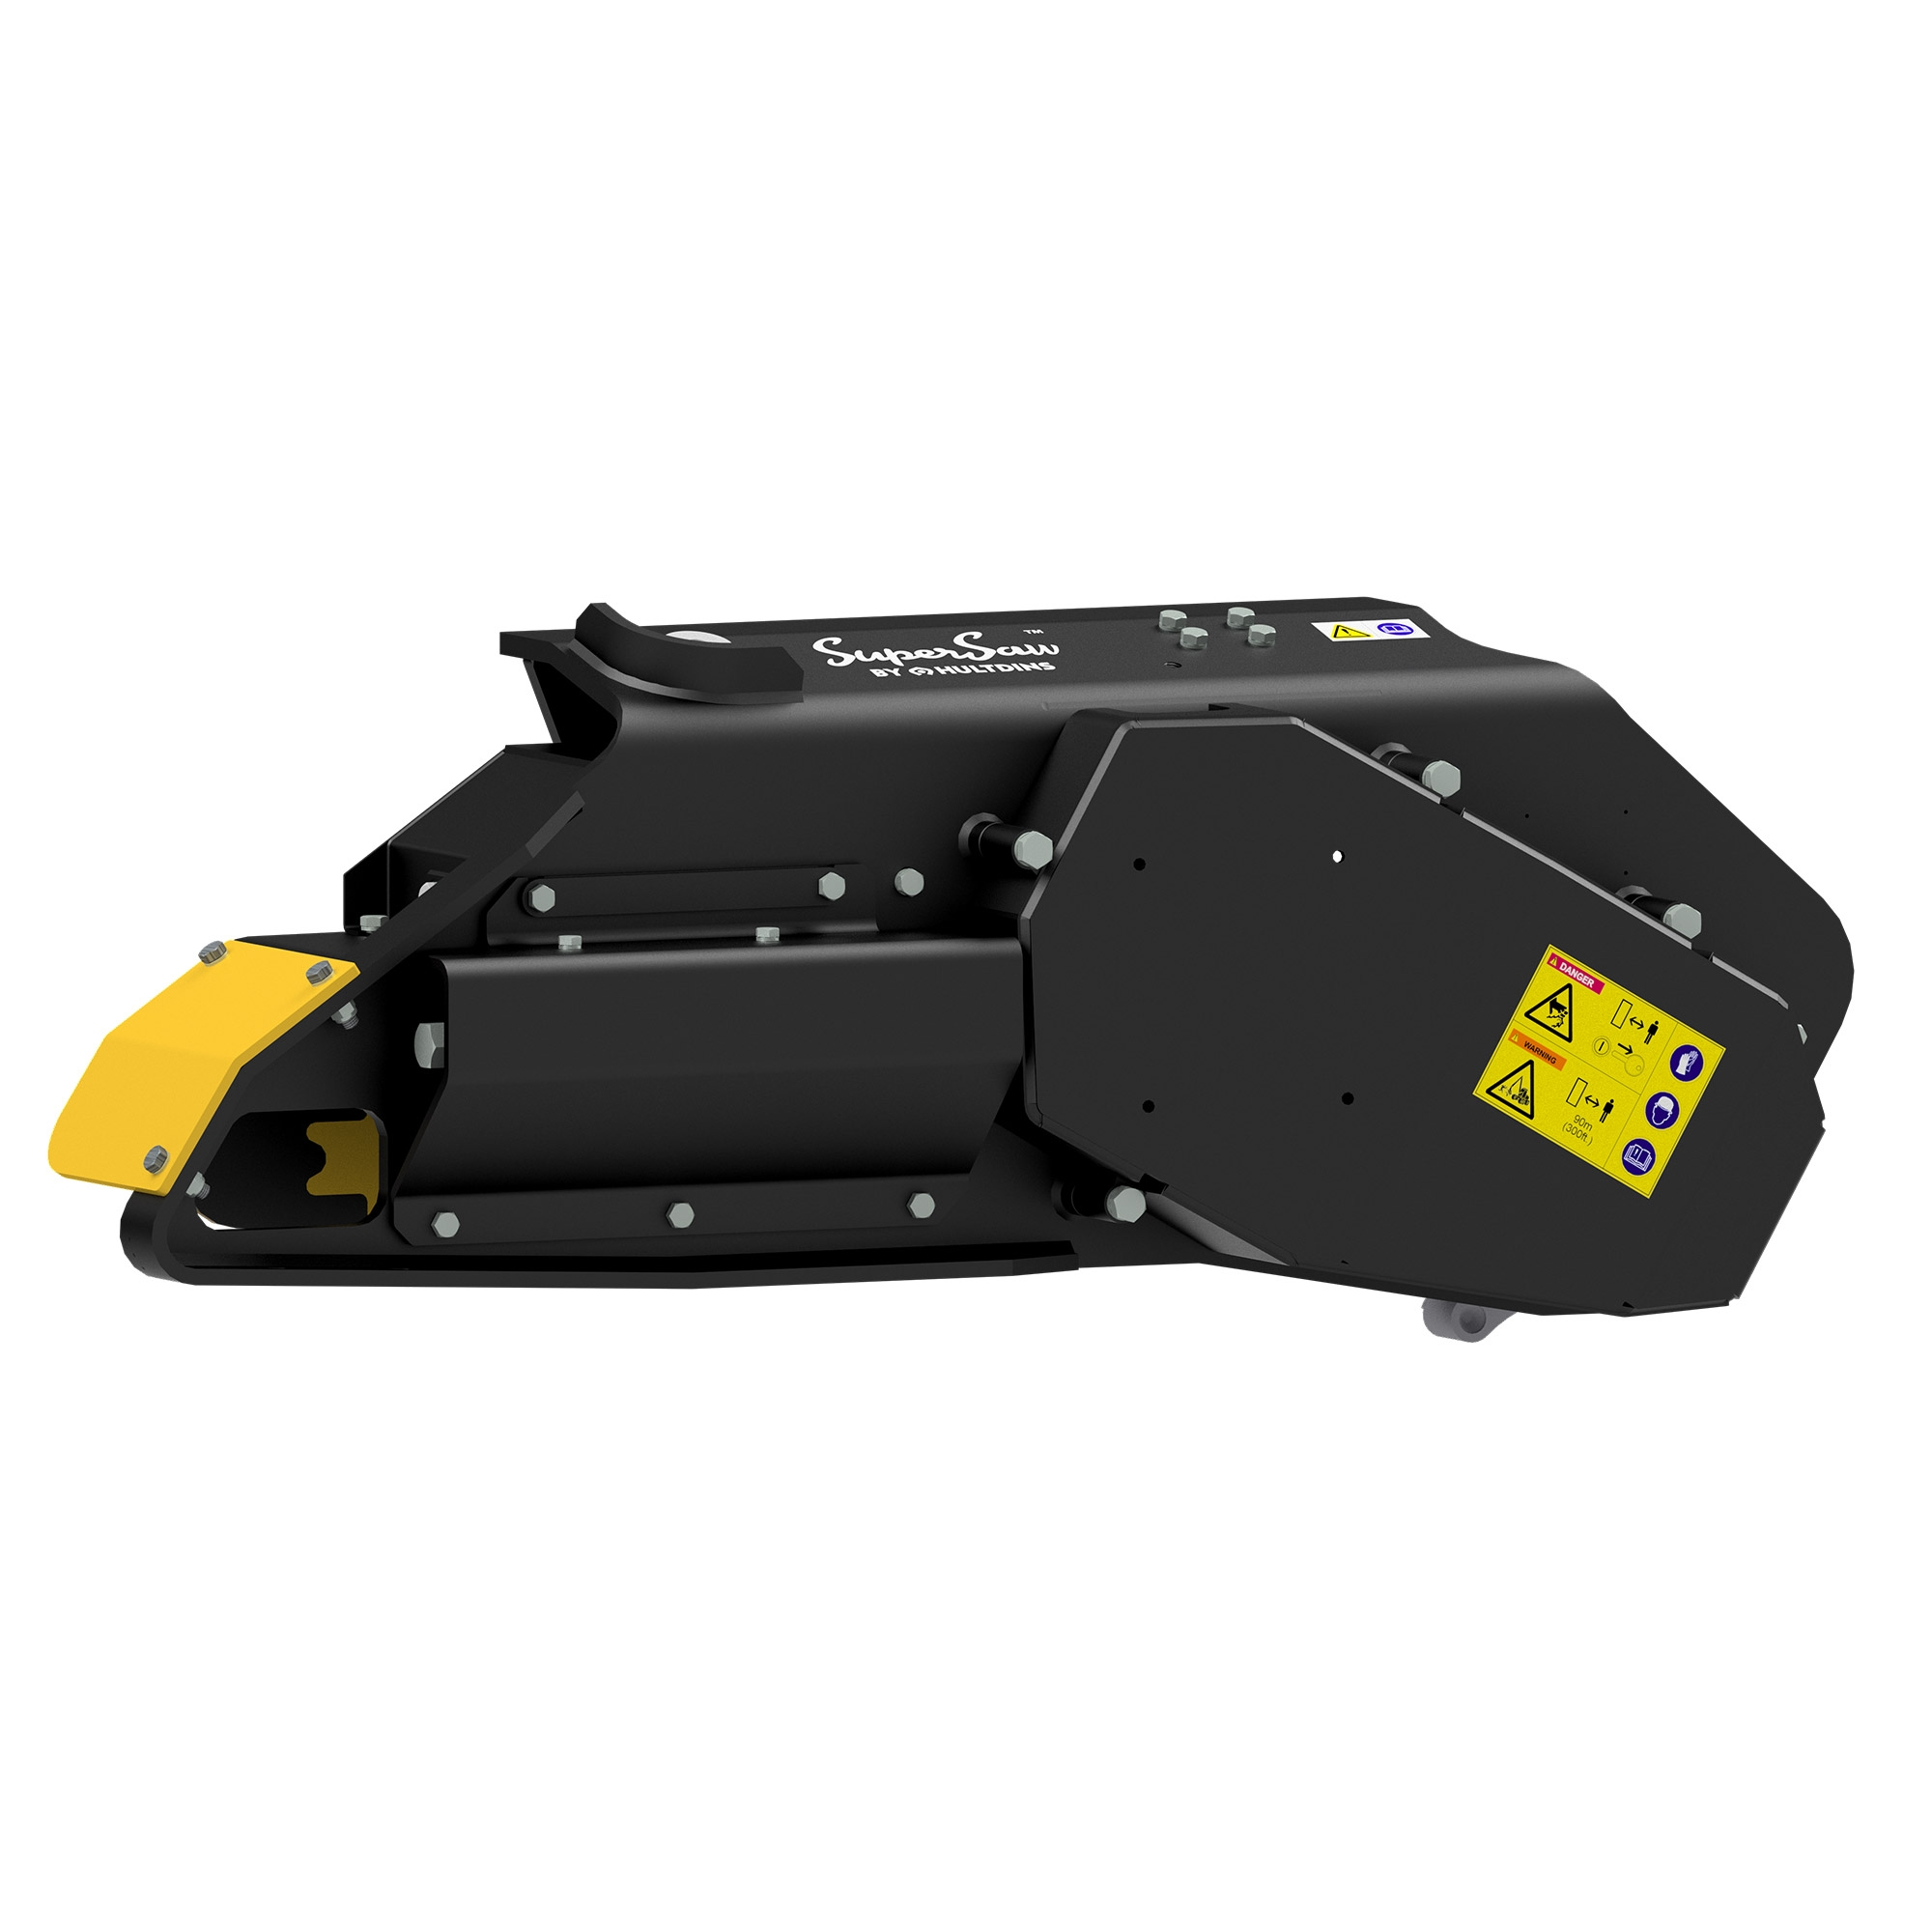 SuperSaw 650-S